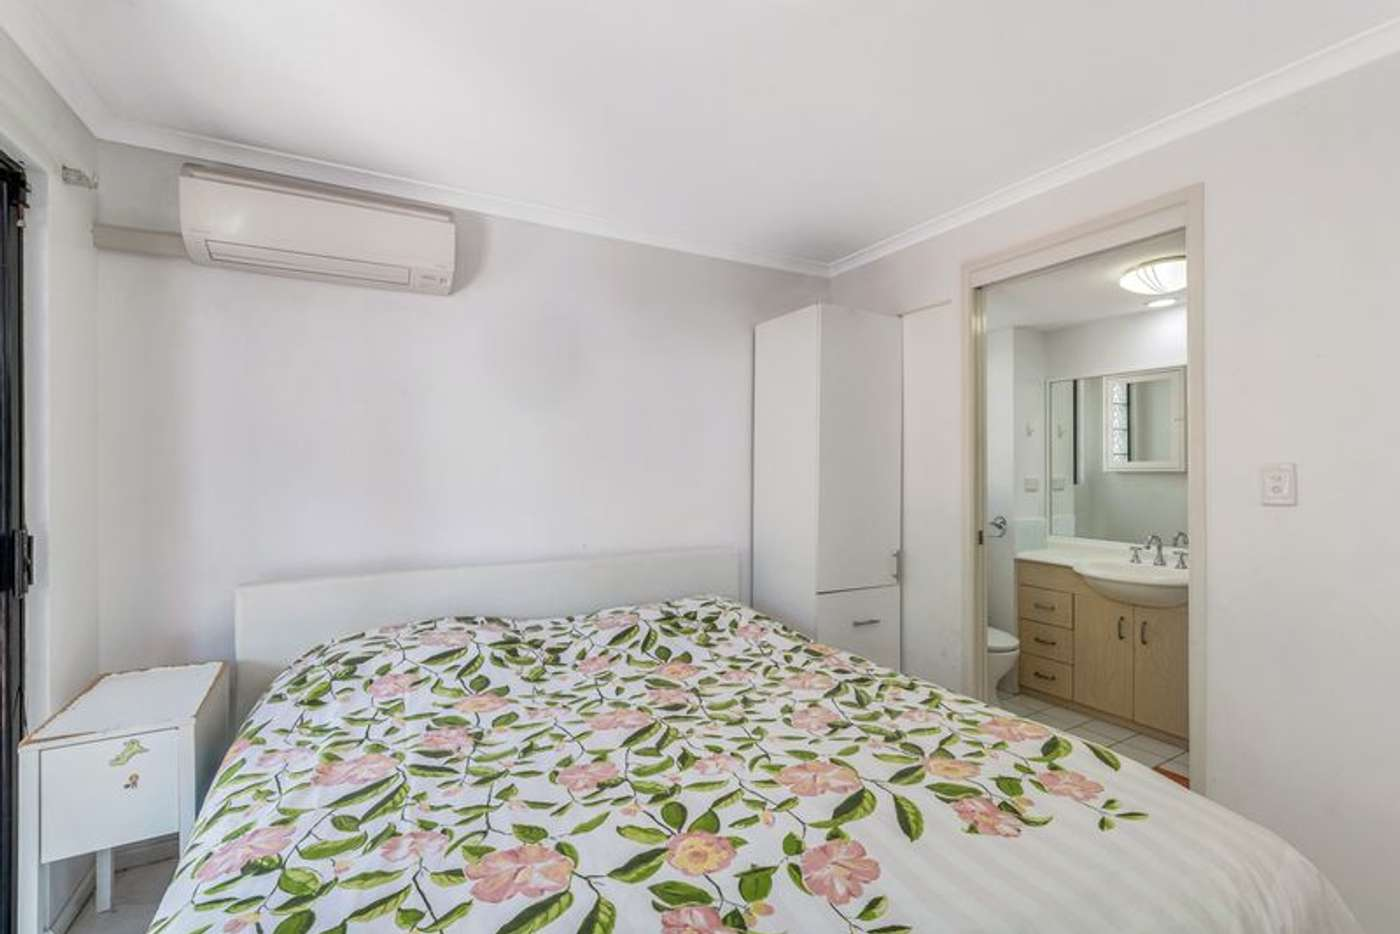 Sixth view of Homely unit listing, 5/29 Durham Street, St Lucia QLD 4067